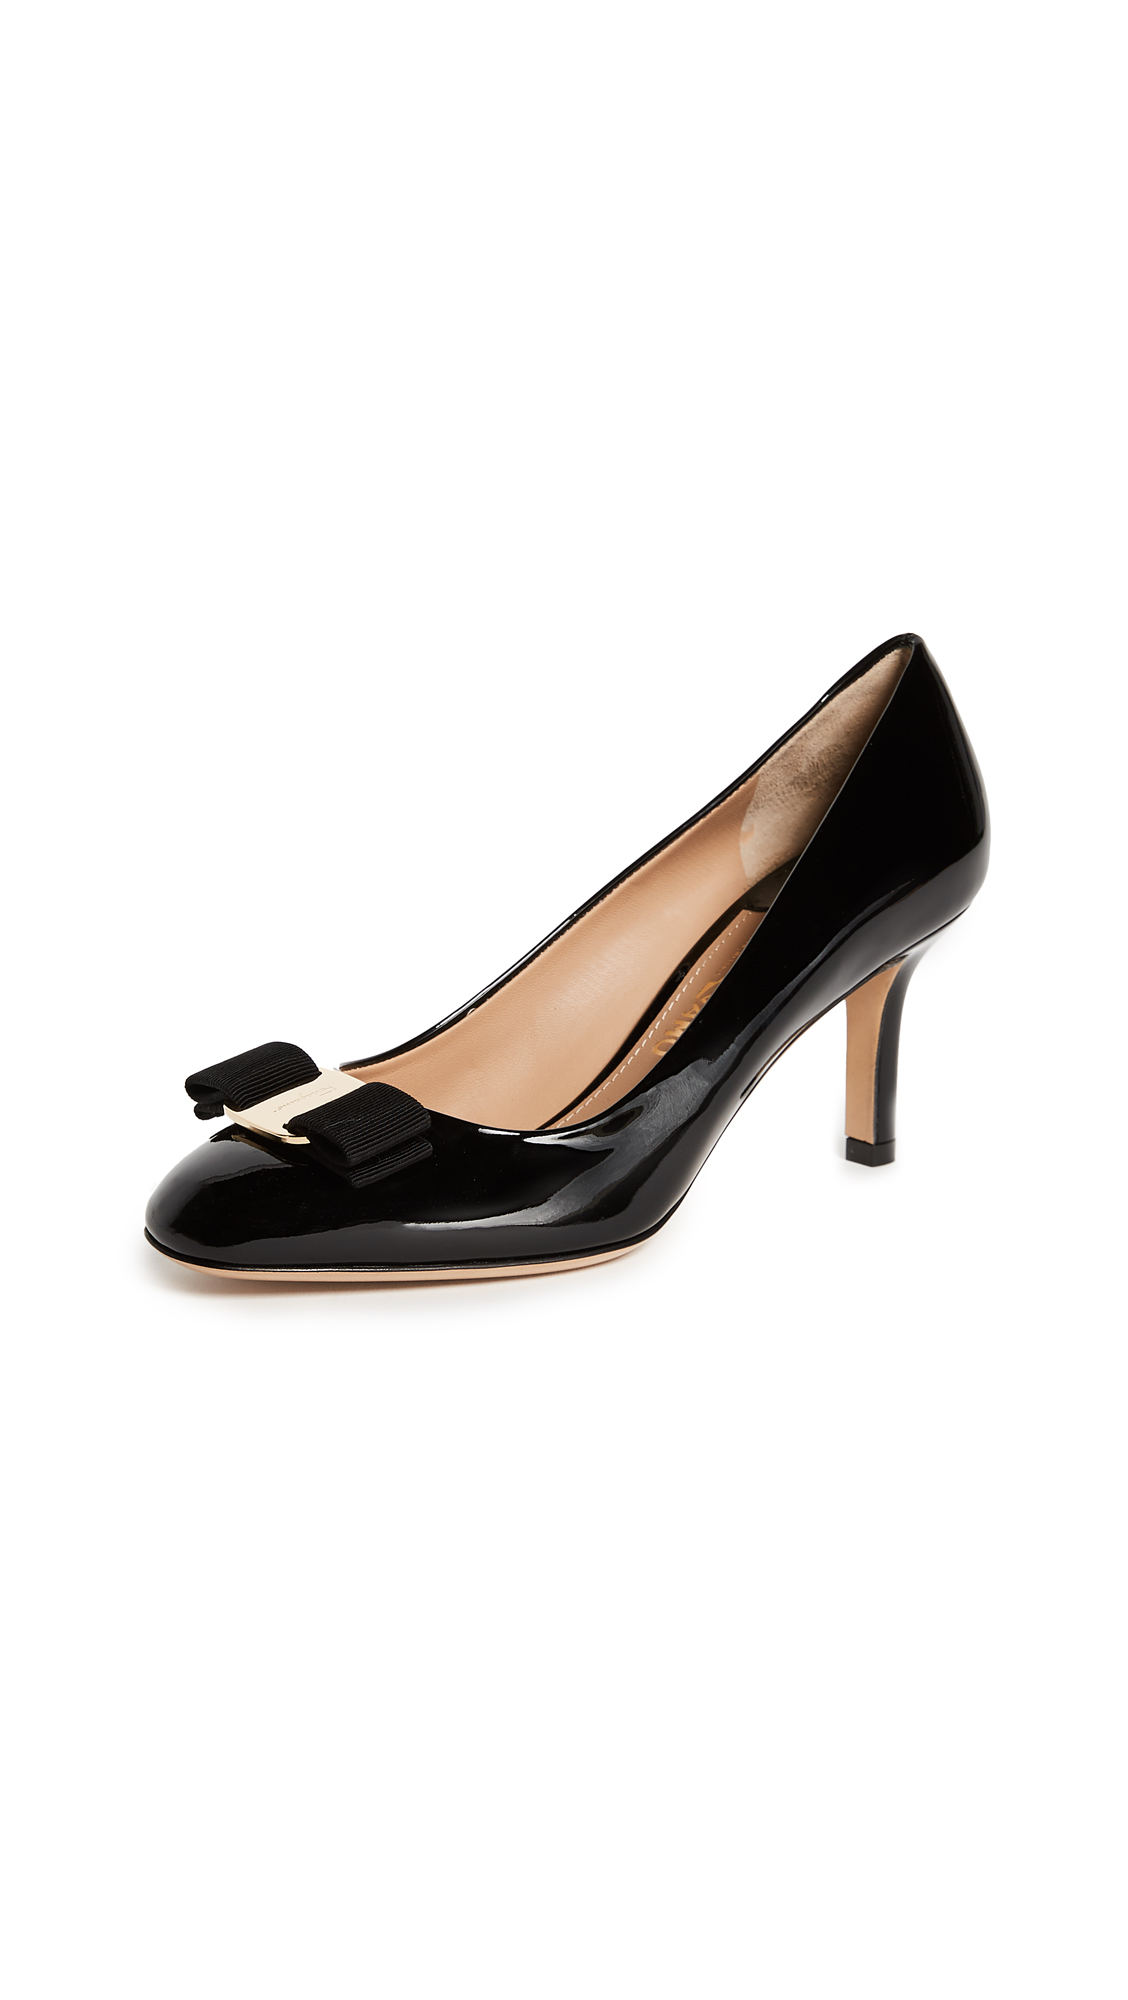 Salvatore Ferragamo Erice 70mm Pumps - Nero